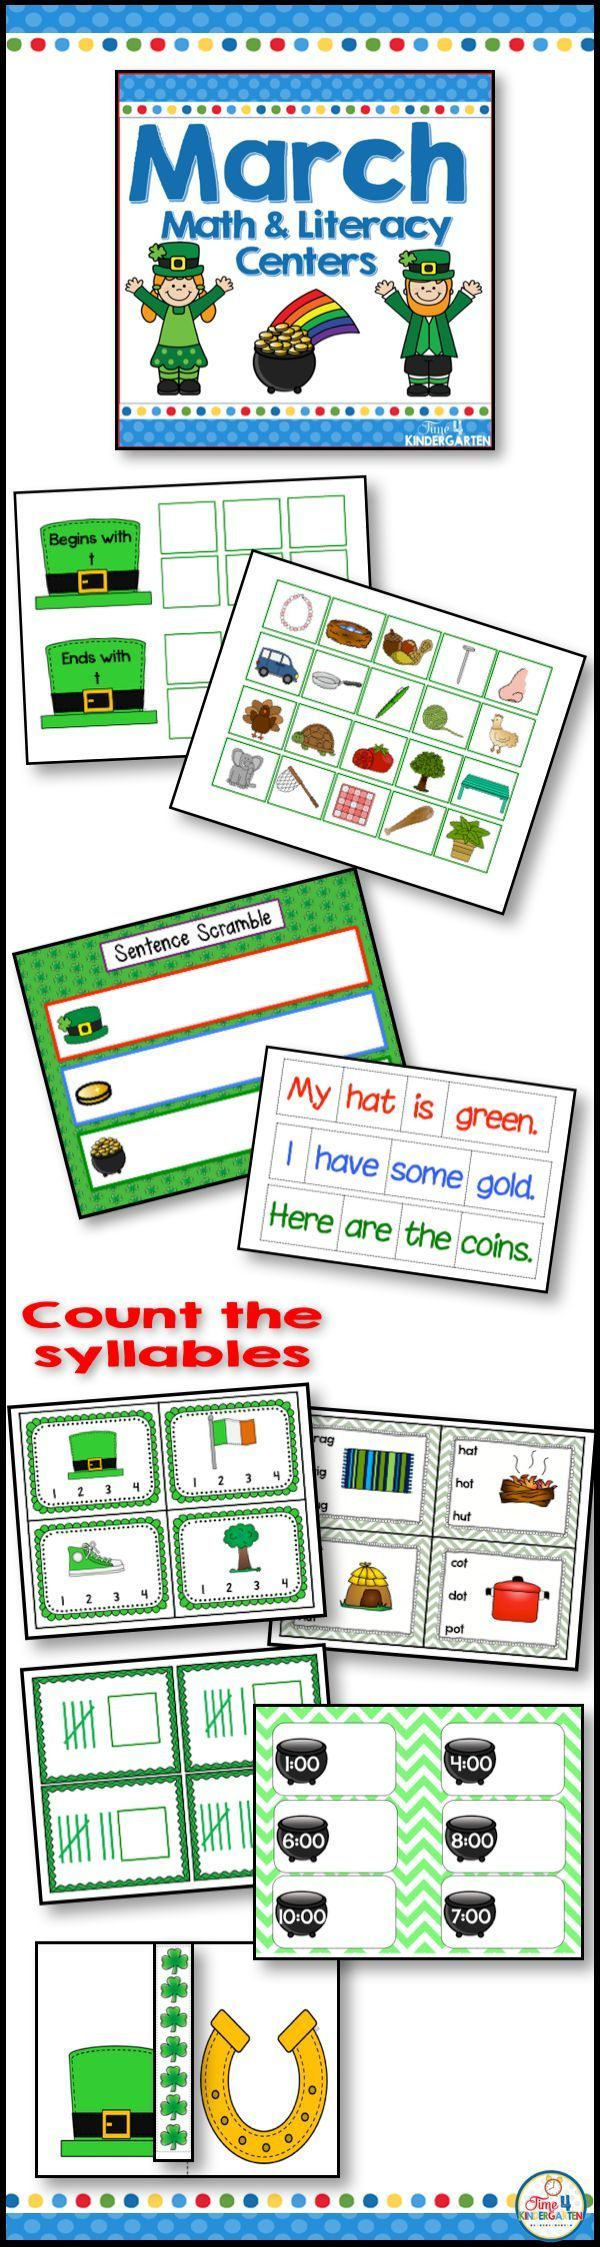 March literacy and Math St. Patrick's themed centers for kindergarten. This resource is packed with common core skills, CVC, syllables, word ending, phonemic awareness, rhyming, vowels, telling time, measurement, addition, subtraction, number order, tally marks and more.  Every kindergarten classroom needs this resource for their march literacy and math centers.  You little leprechauns will love the Saint Patrick's Day theme.